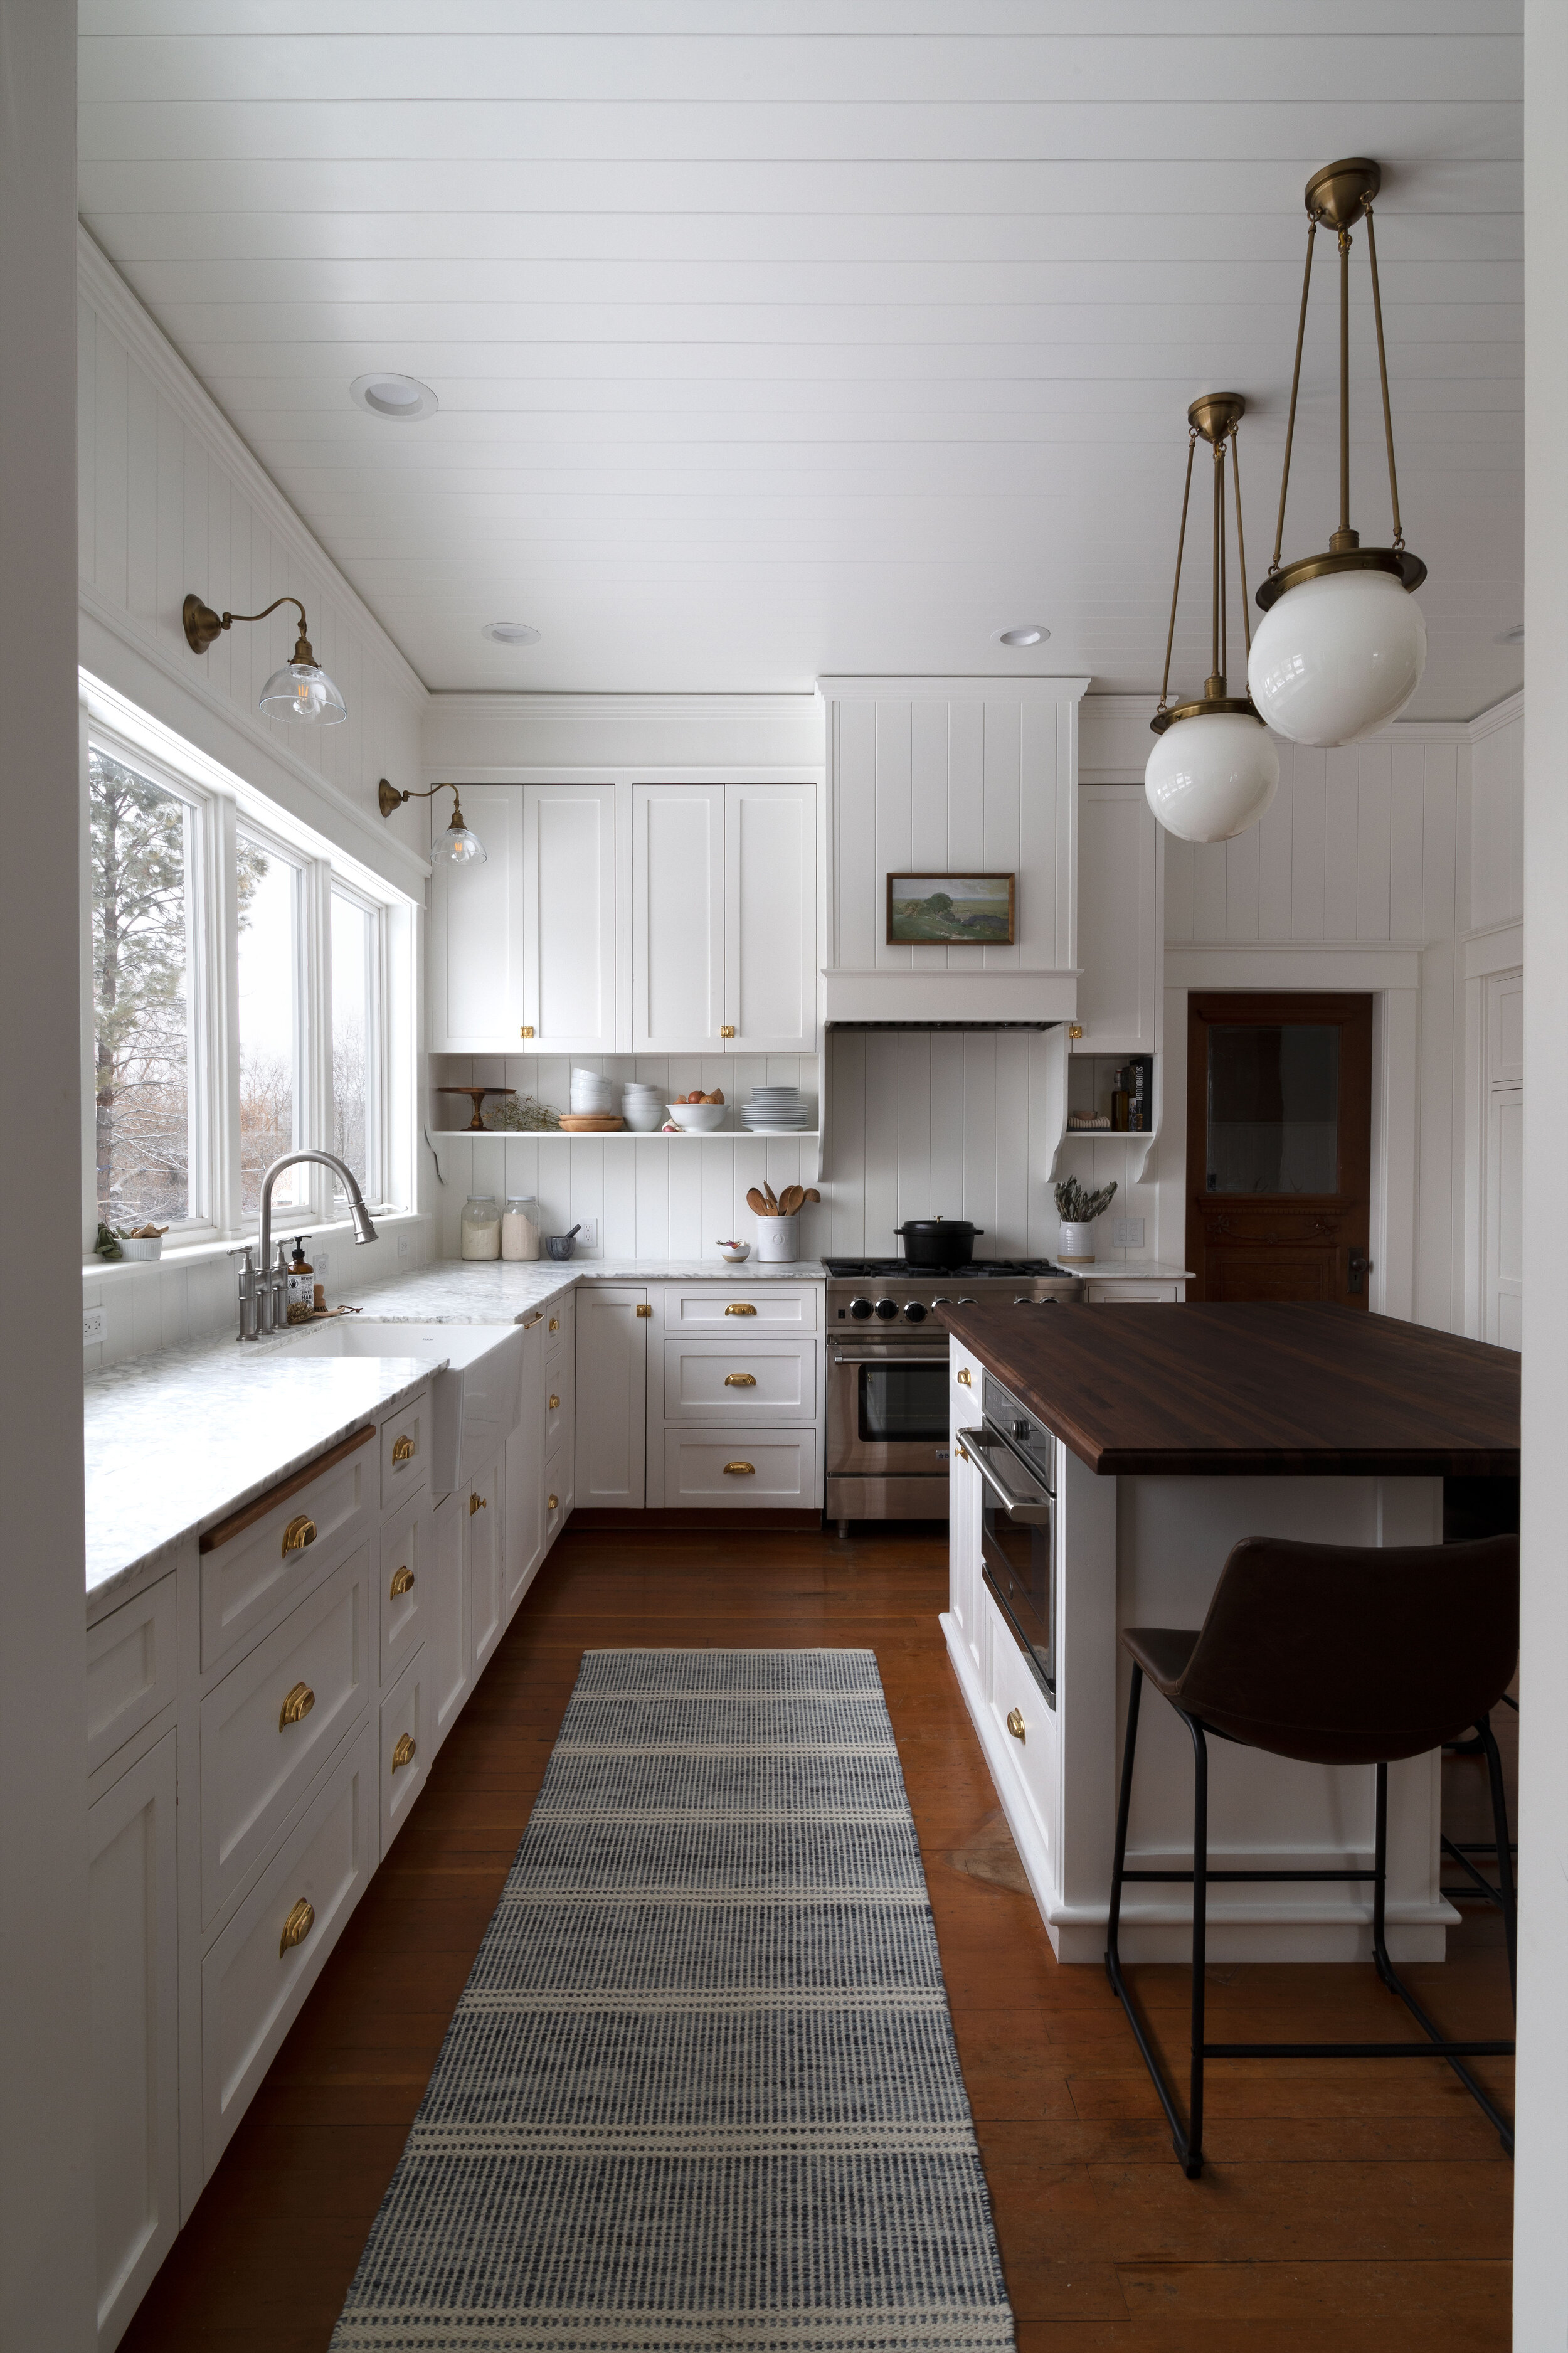 The-Grit-and-Polish---Farmhouse-Country-Kitchen-Reveal-3.0-32.jpg